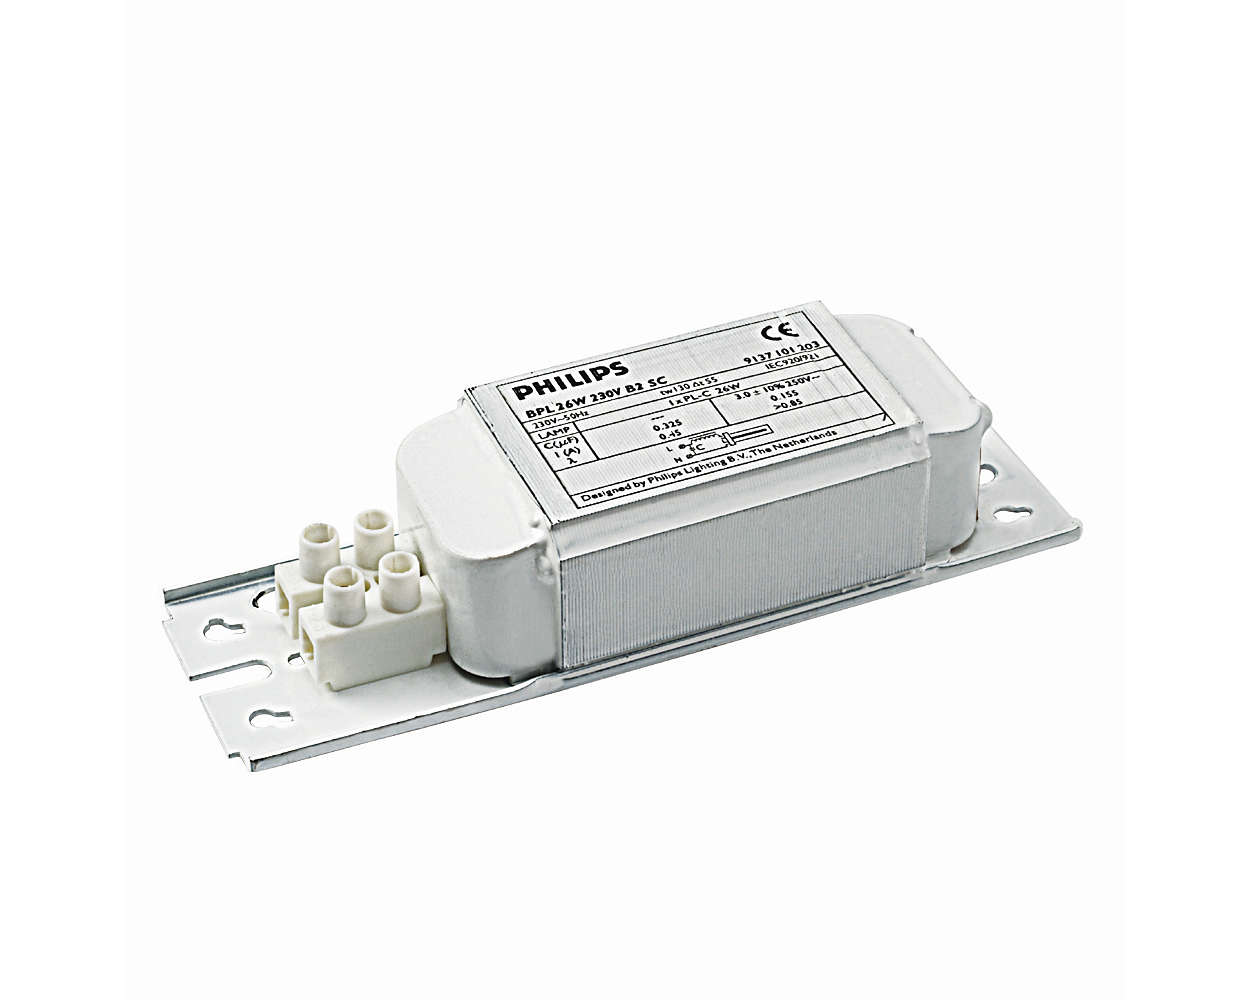 Standard electromagnetic ballast for compact fluorescent applications